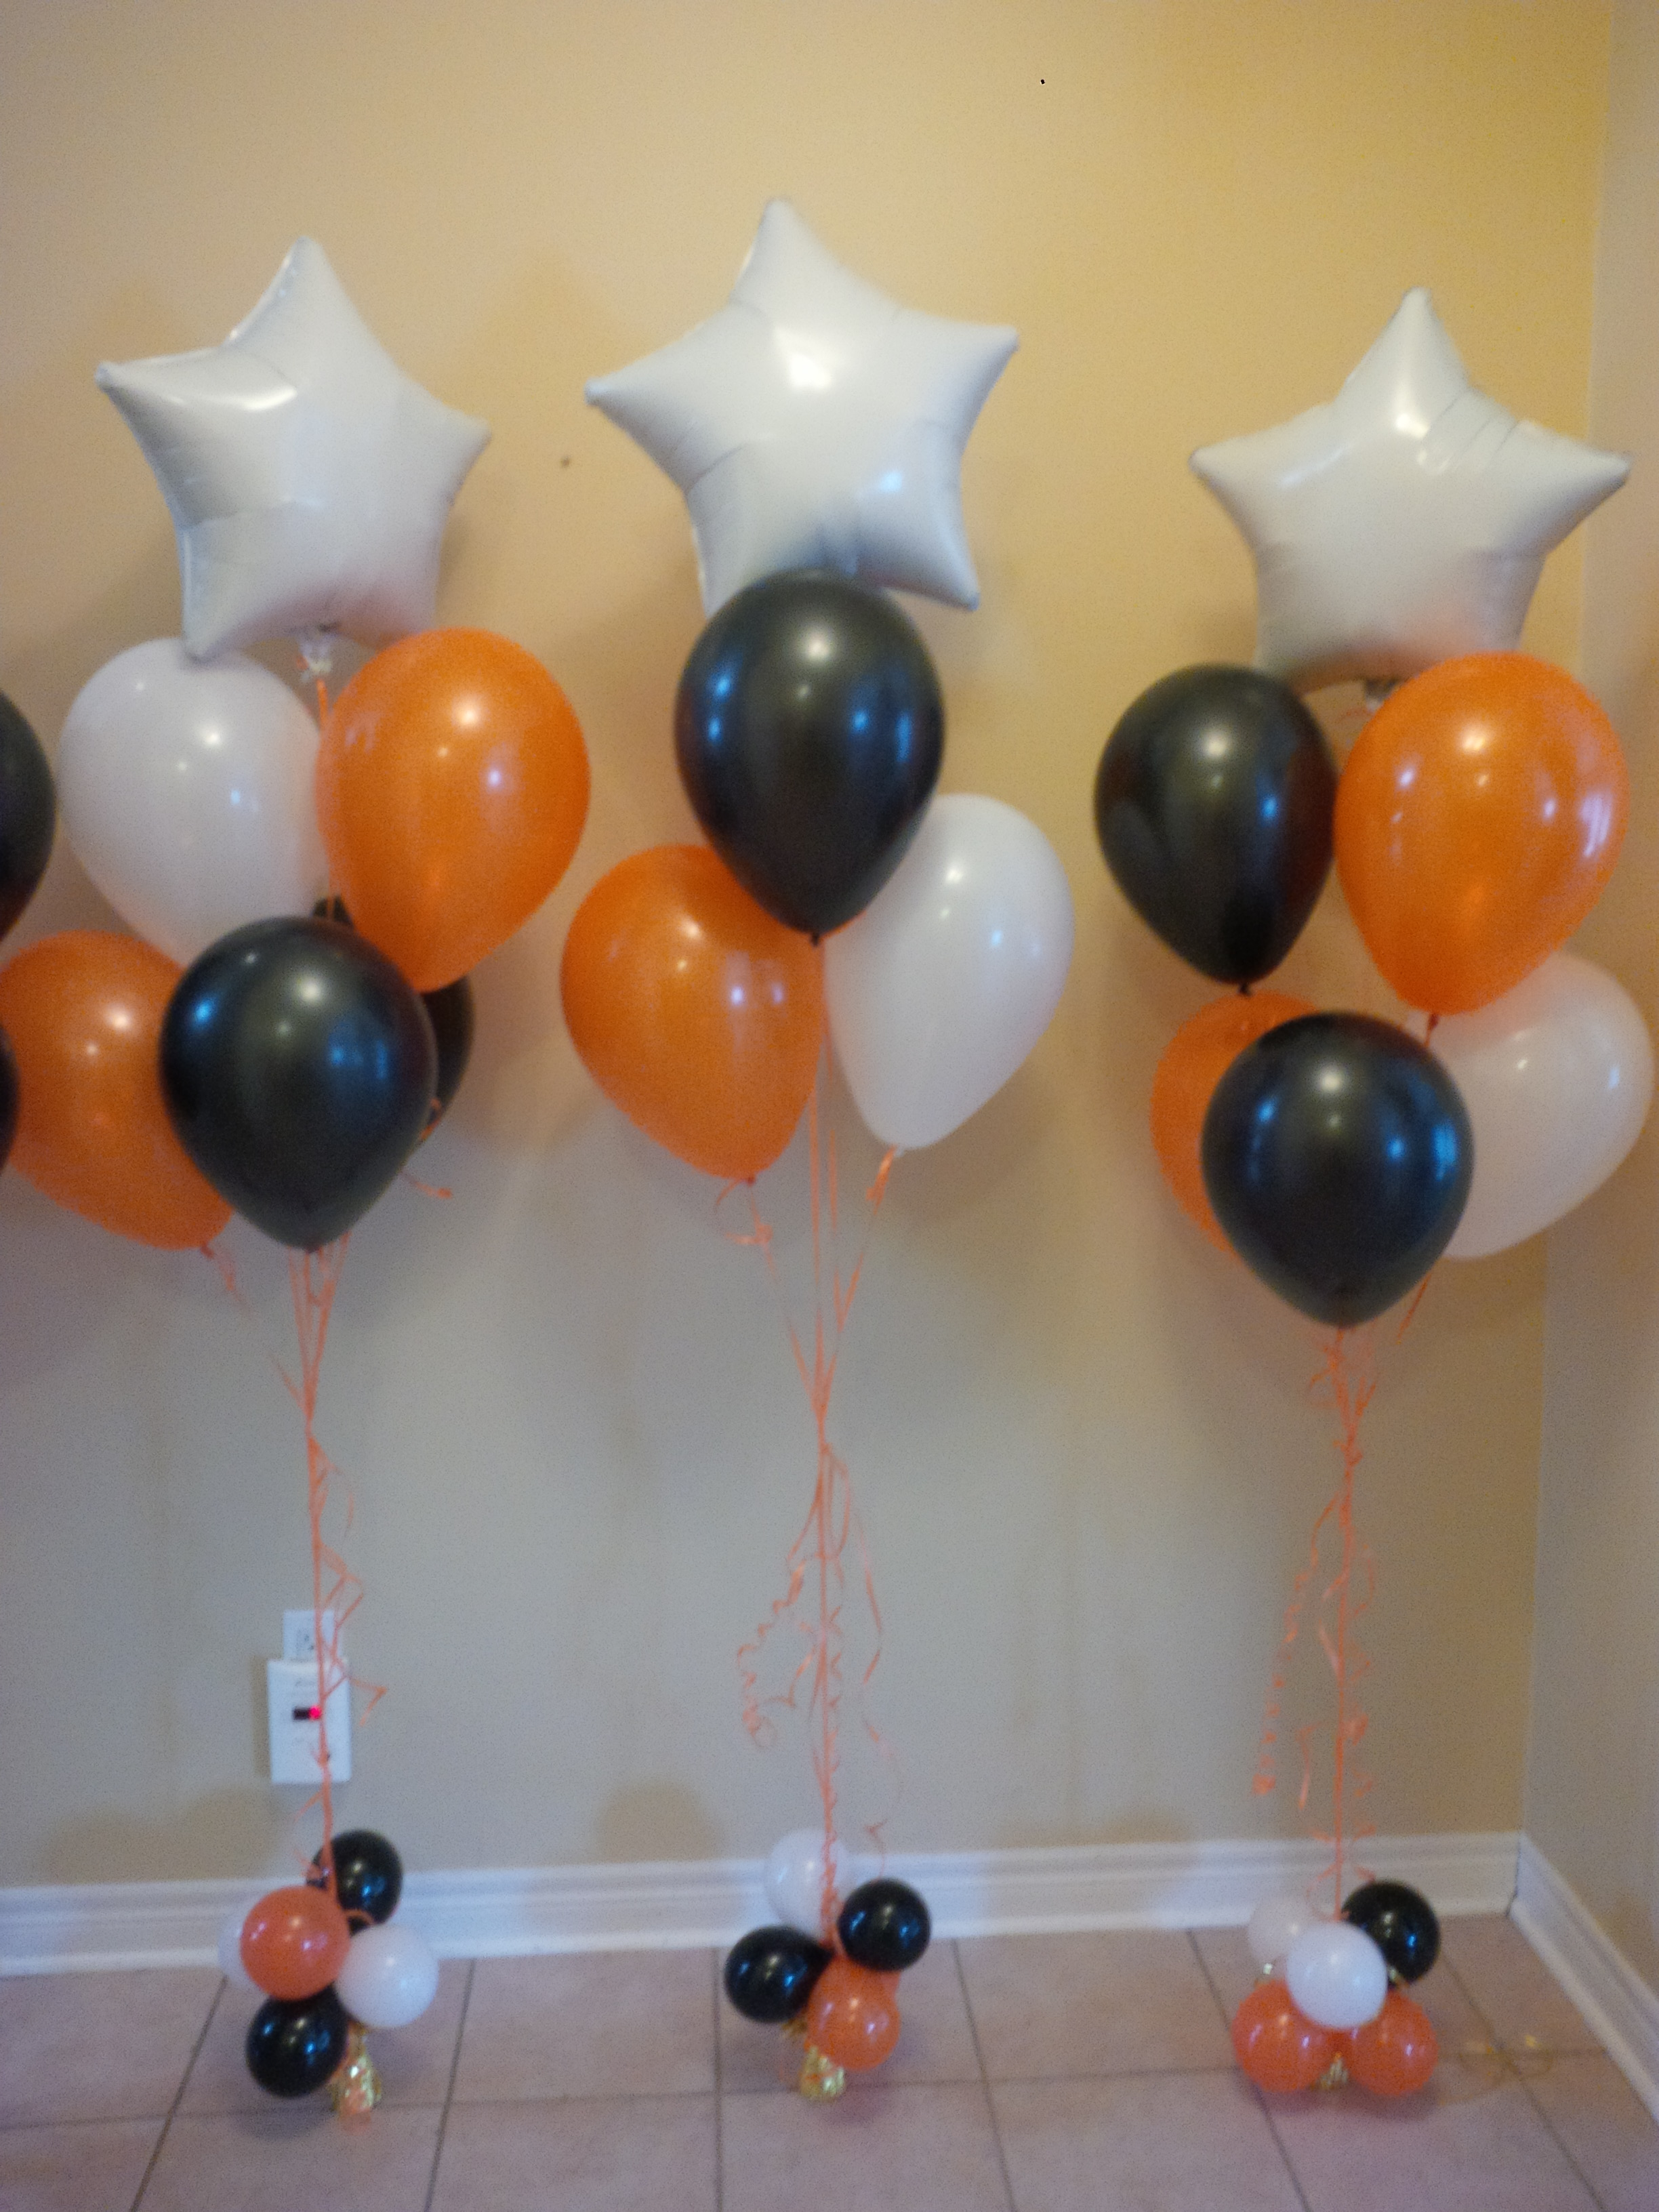 Balloon Bouquet And Gifts Delivery Toronto Call 416 224 2221